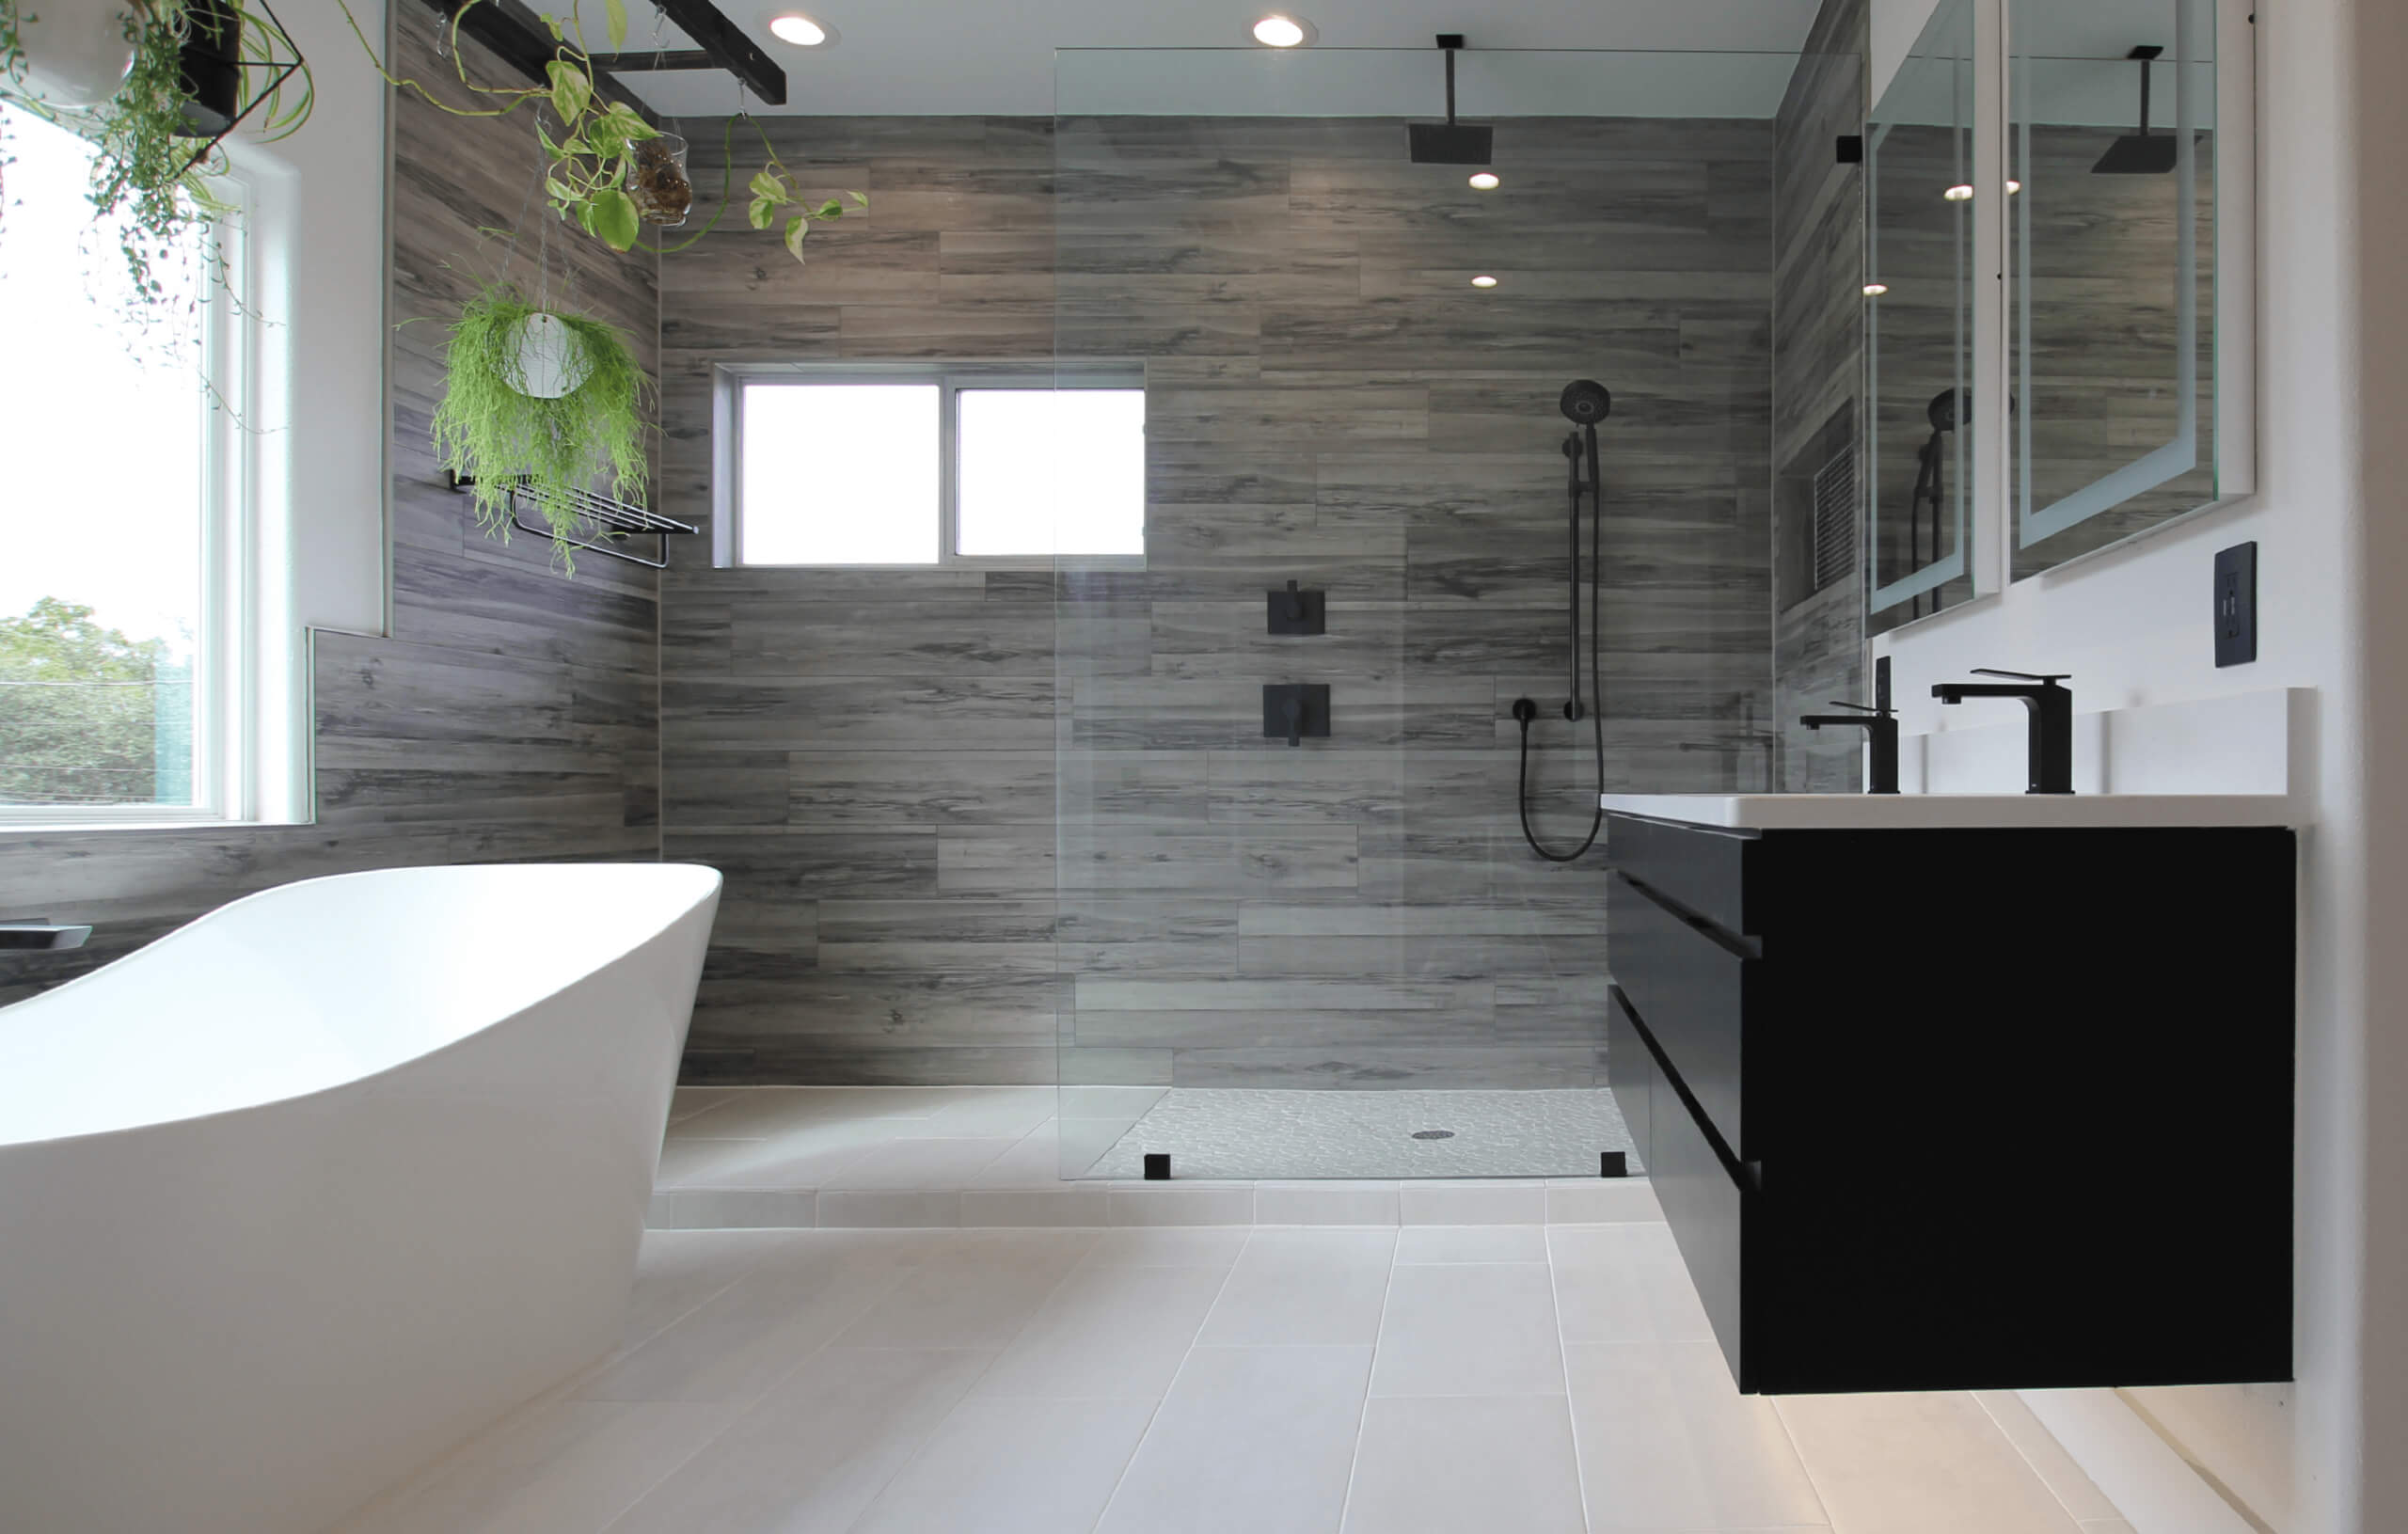 Custom bathroom with modern fixtures including free standing tub, glass shower, and floating cabinets